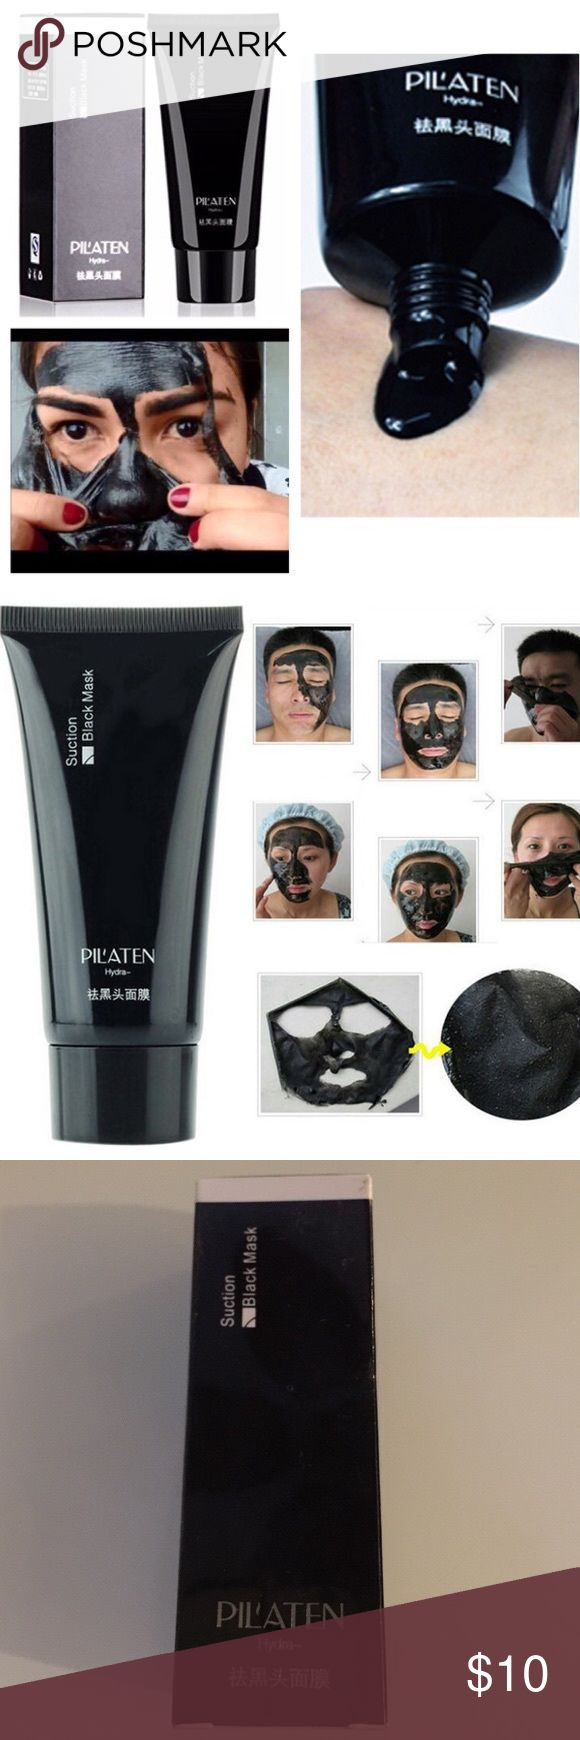 NEW! Pilaten Blackhead Acne Cleansing Mask Cream RESEALABLE!  REMOVES GUNK OUT OF PORES WITH EVERY USE!  FOR ALL SKIN TYPES , RECOMMENDED USE FEW TIMES A WEEK TO SEE CHANGES  ----HOW TO USE:--  1. Wash your face with warm/hot water to open your pores. (After hot shower is recommended)  2. Dry Face  3. Apply the face mask on your face and/or nose.   ( A thick layer helps it peel off evenly)  4. Wait till the mask dries ( About 15-20 mins)  5. Peel it off DESCRIPTION: - Effective in removing…